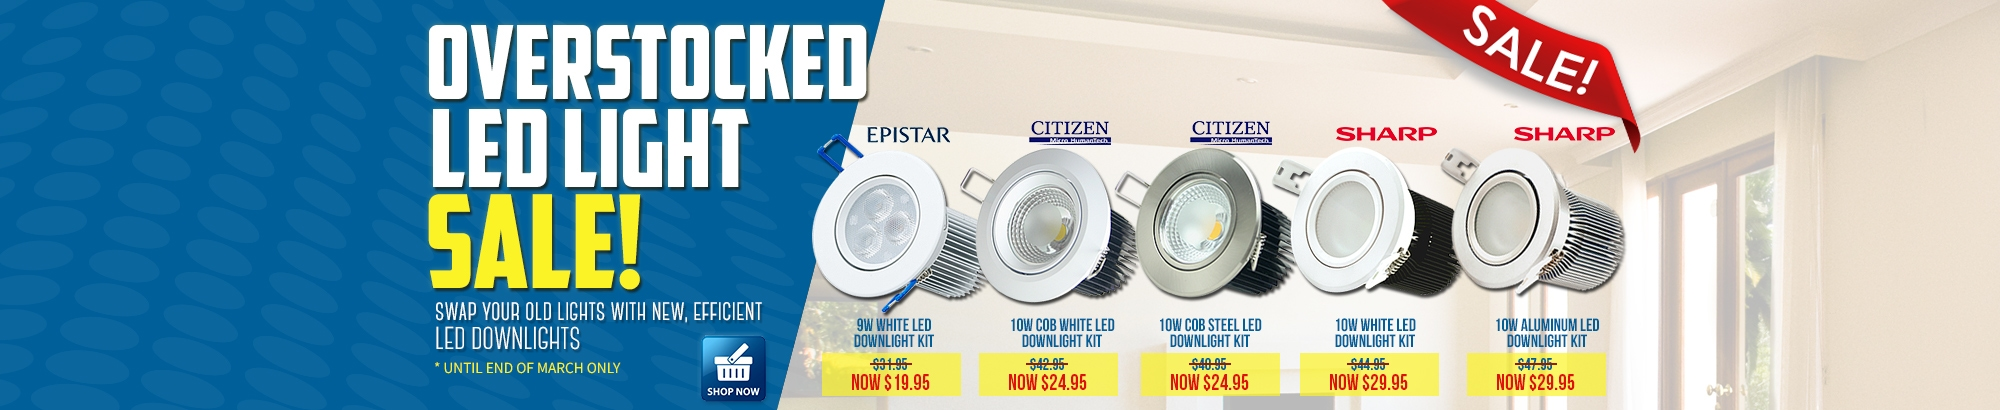 LED Lighting Sale